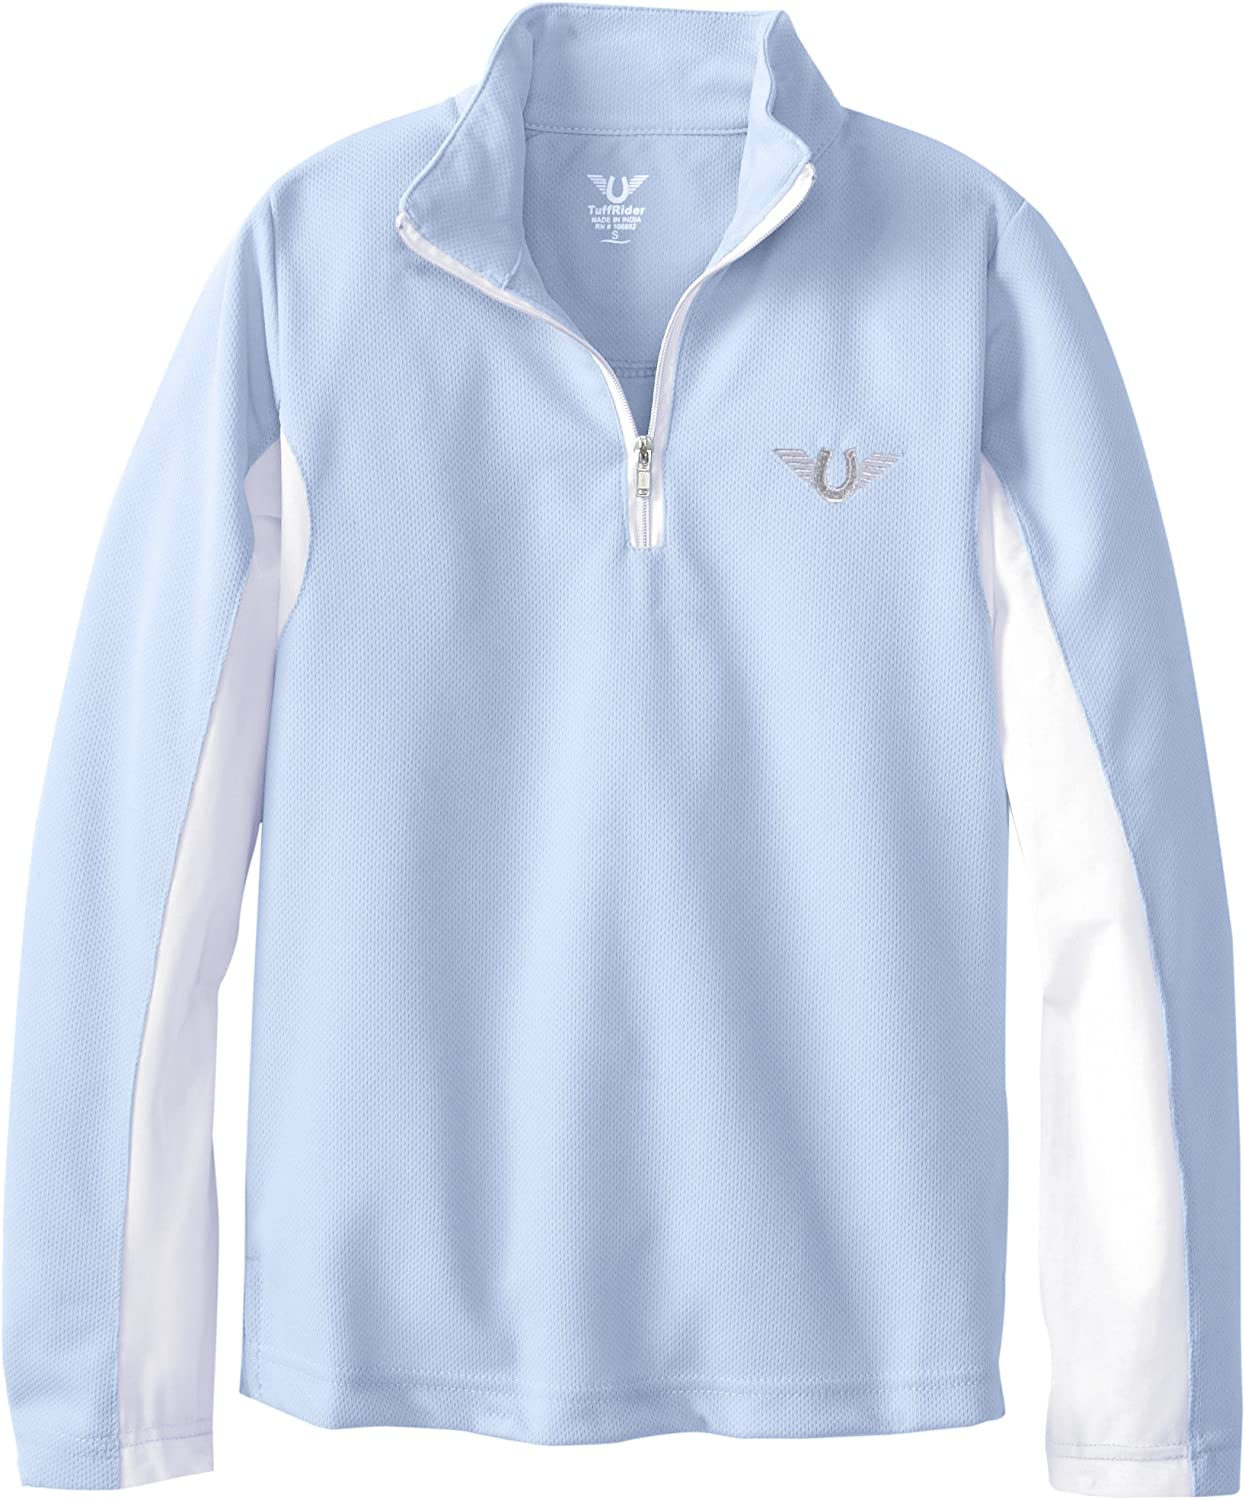 TuffRider Kids Ventilated Technical Long Sleeve Sport Shirt with Mesh